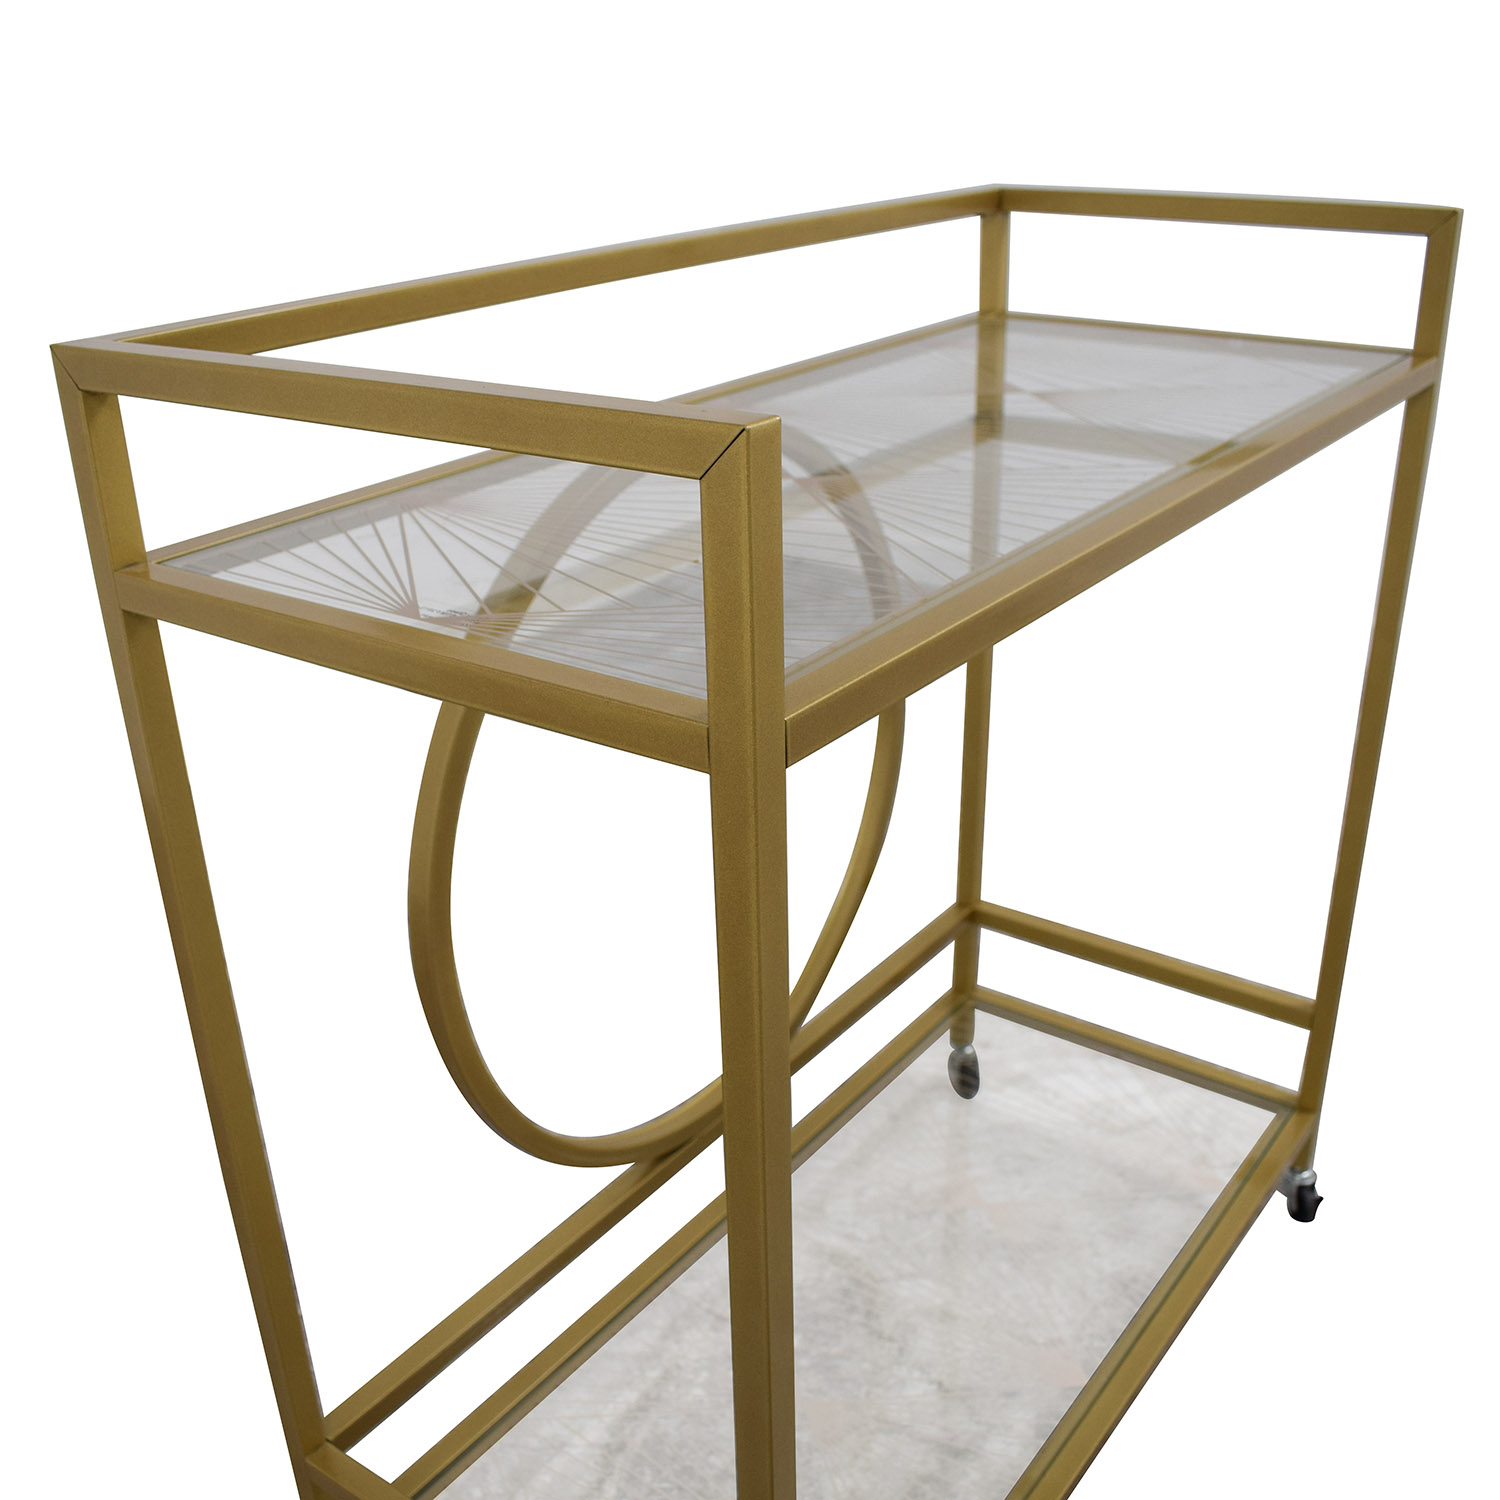 Cynmax Cynmax Sauder International Lux Bar Cart